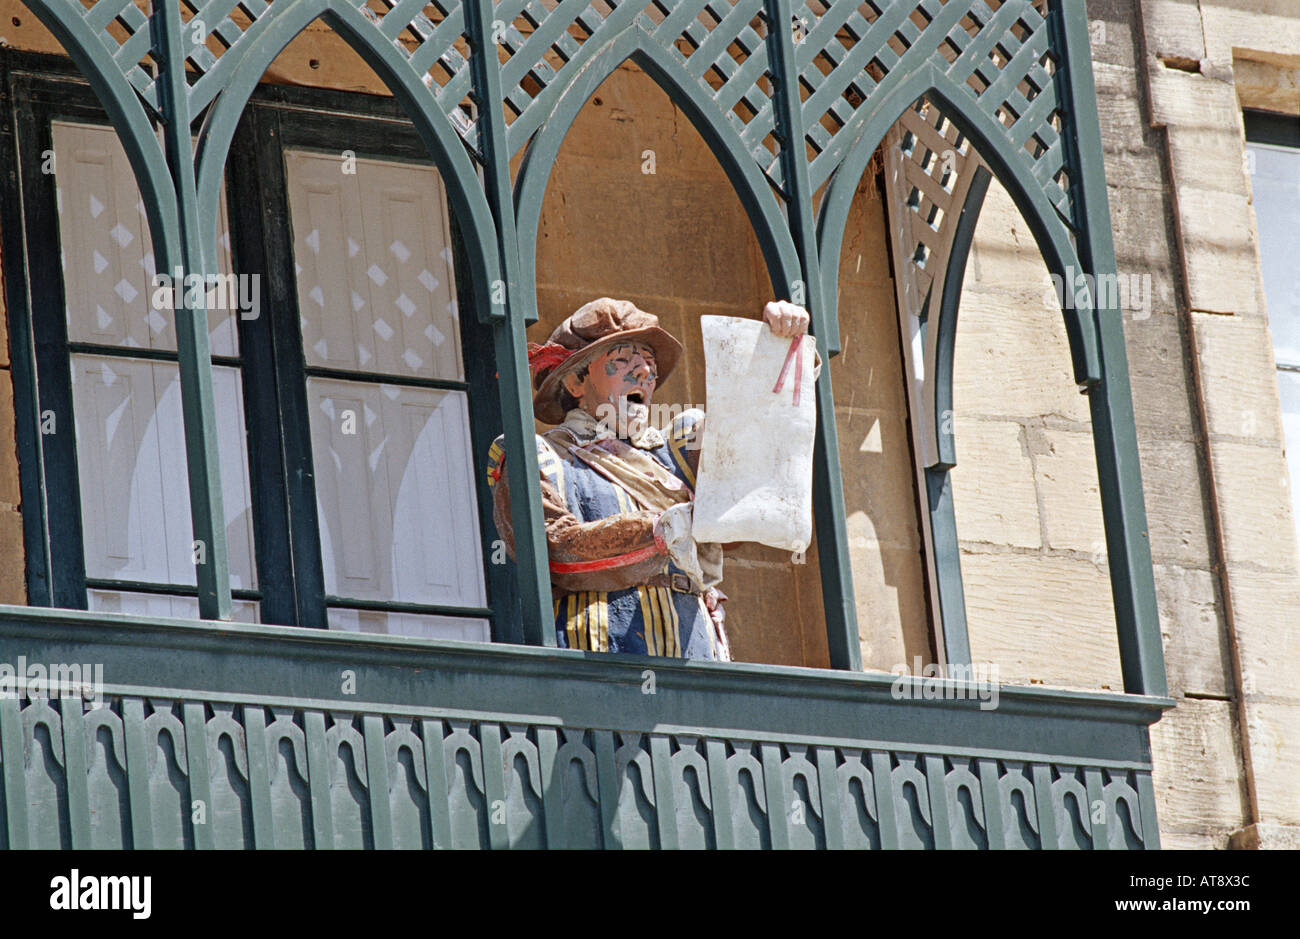 Carved and likelike figurine of a town crier making an announcement from a wooden balcony Valletta Malta - Stock Image